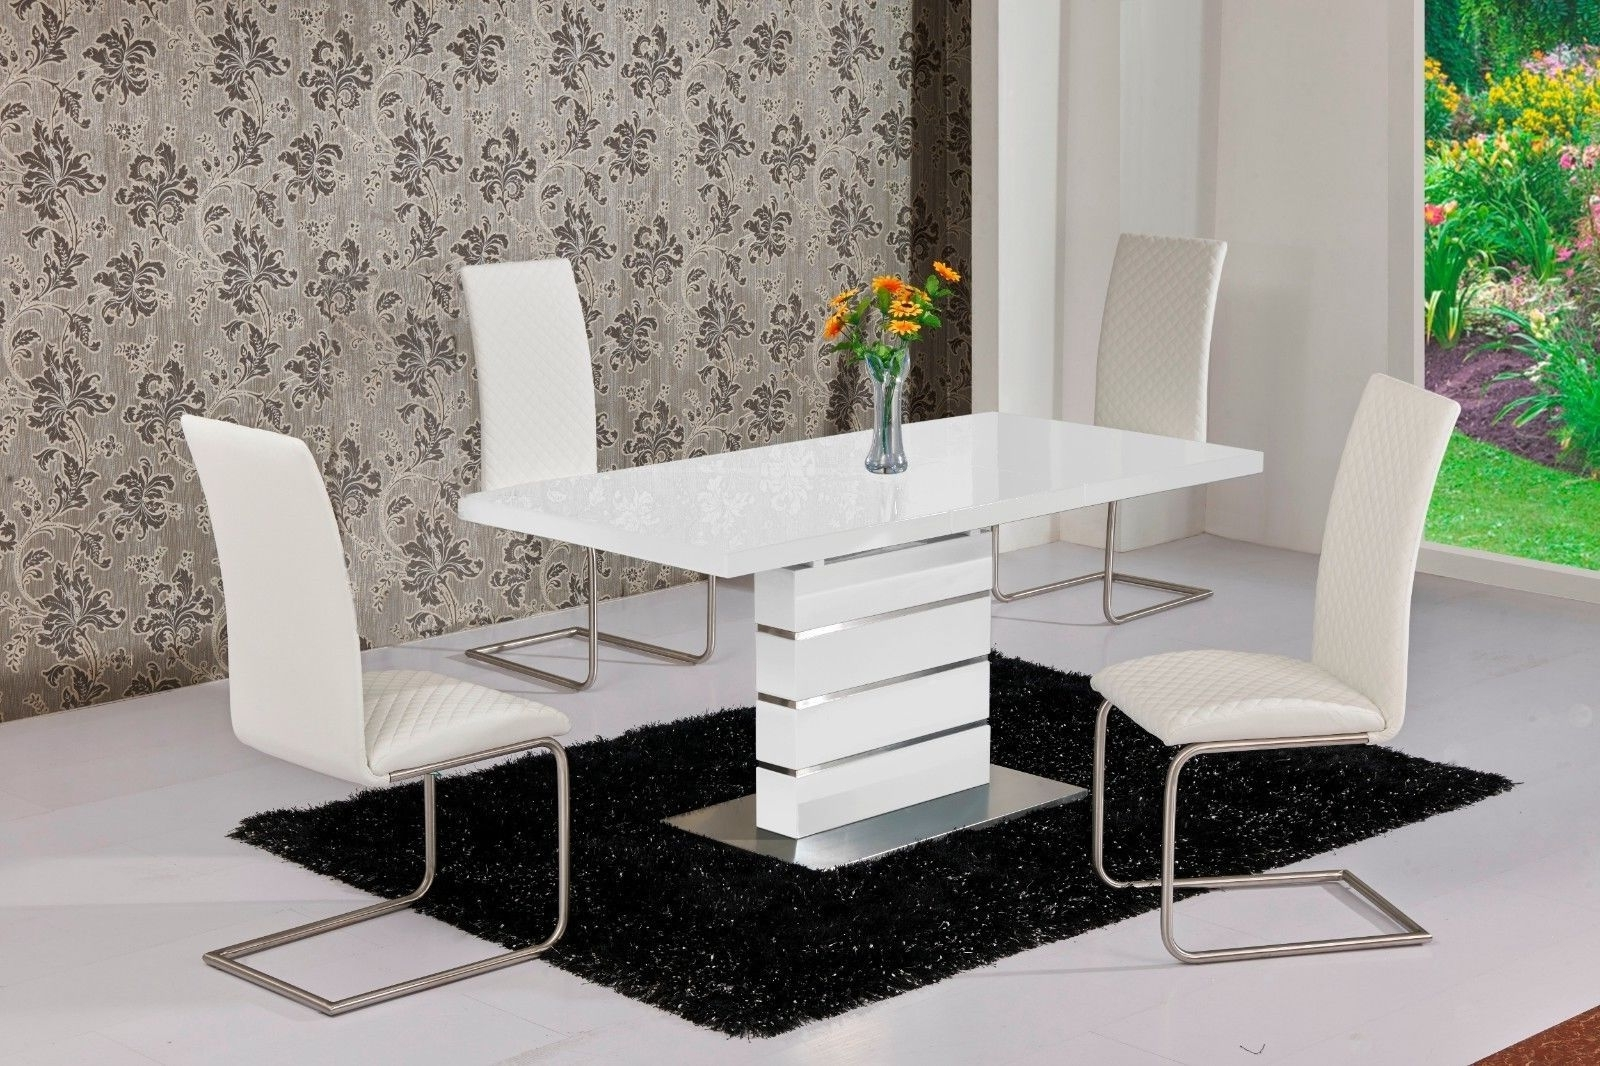 Mace High Gloss Extending 120 160 Dining Table & Chair Set – White Pertaining To Preferred Extending Dining Tables Set (View 11 of 25)